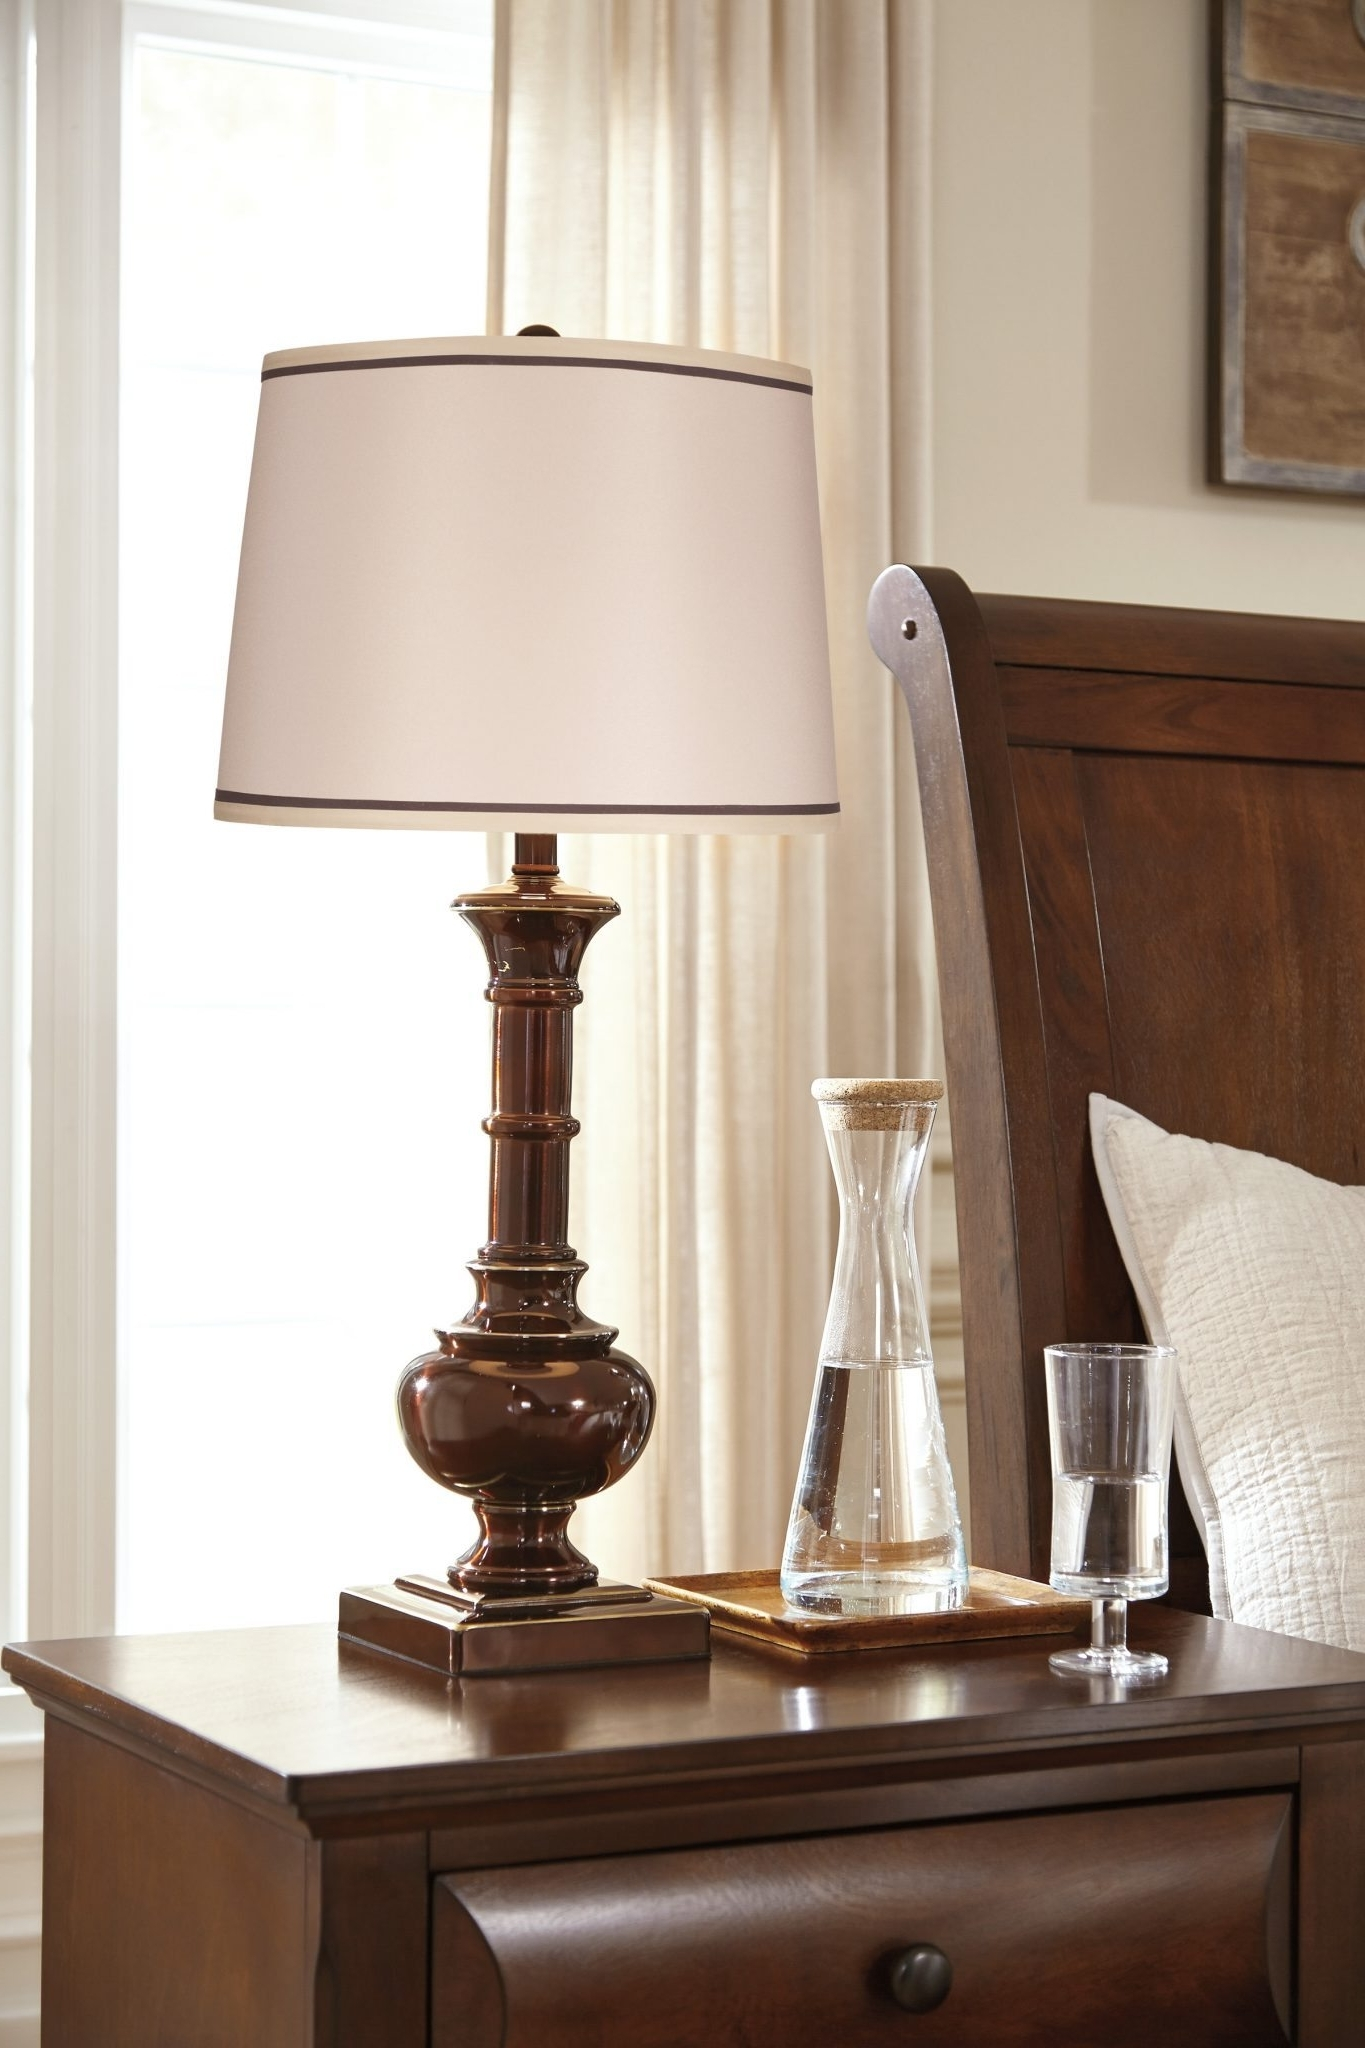 65 Most Killer Elegant Table Lamps Modern For Living Room For Fashionable Bronze Living Room Table Lamps (View 3 of 20)